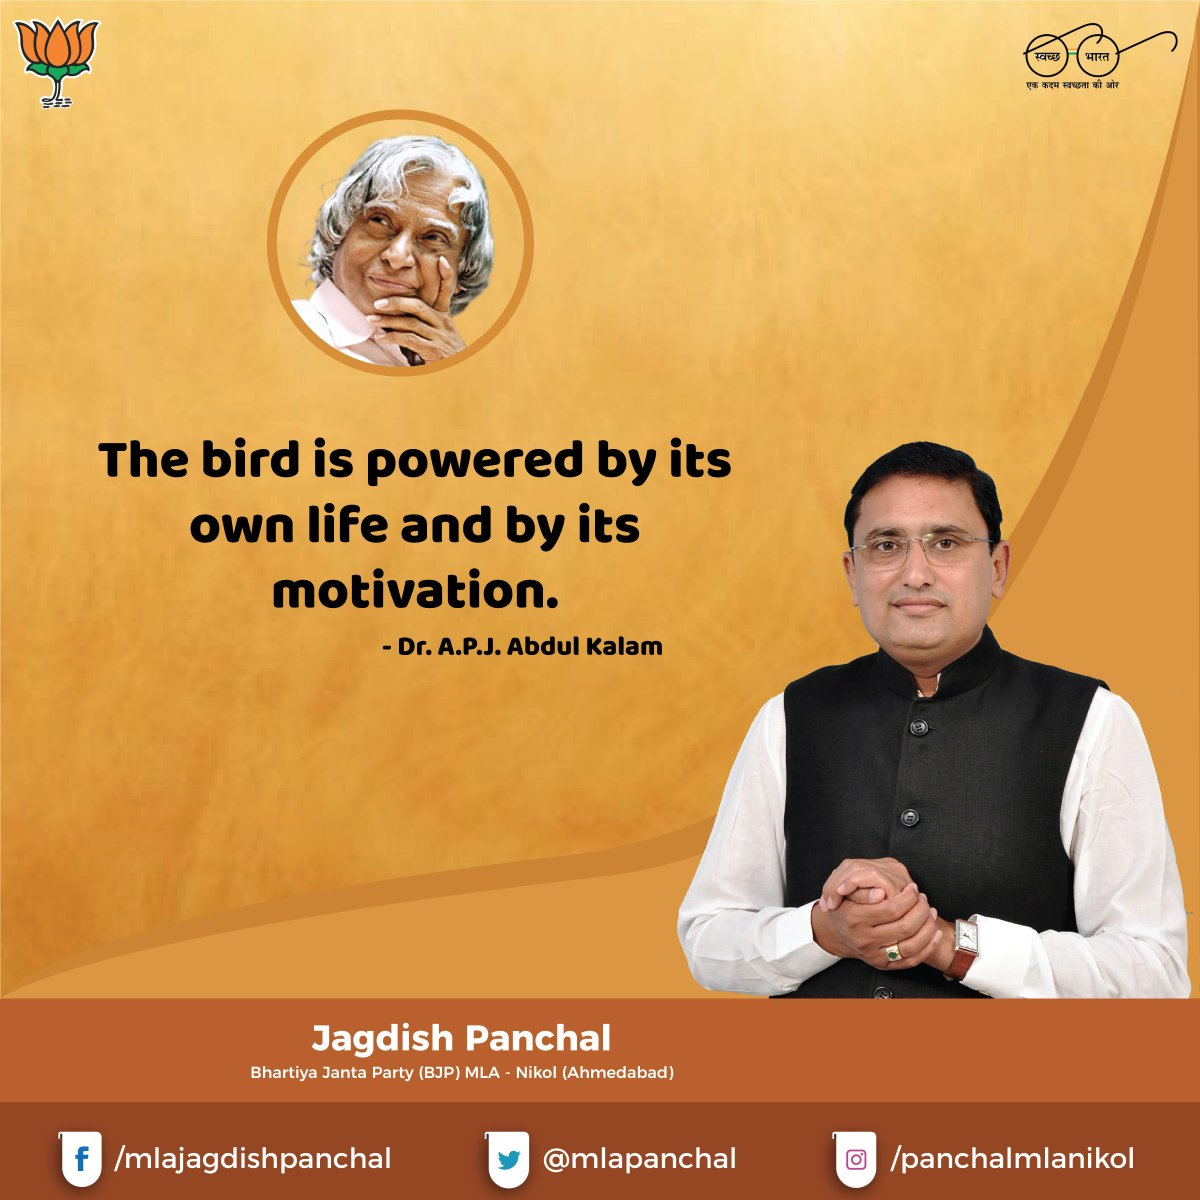 The Bird is powered by its own life and by its Motivation.-Dr. A.P.J. Abdul @KalamCenter #jagdish_panchal #bjp #mla #nikol #odhav #ahmedabad<br>http://pic.twitter.com/ipjBzU3rgq